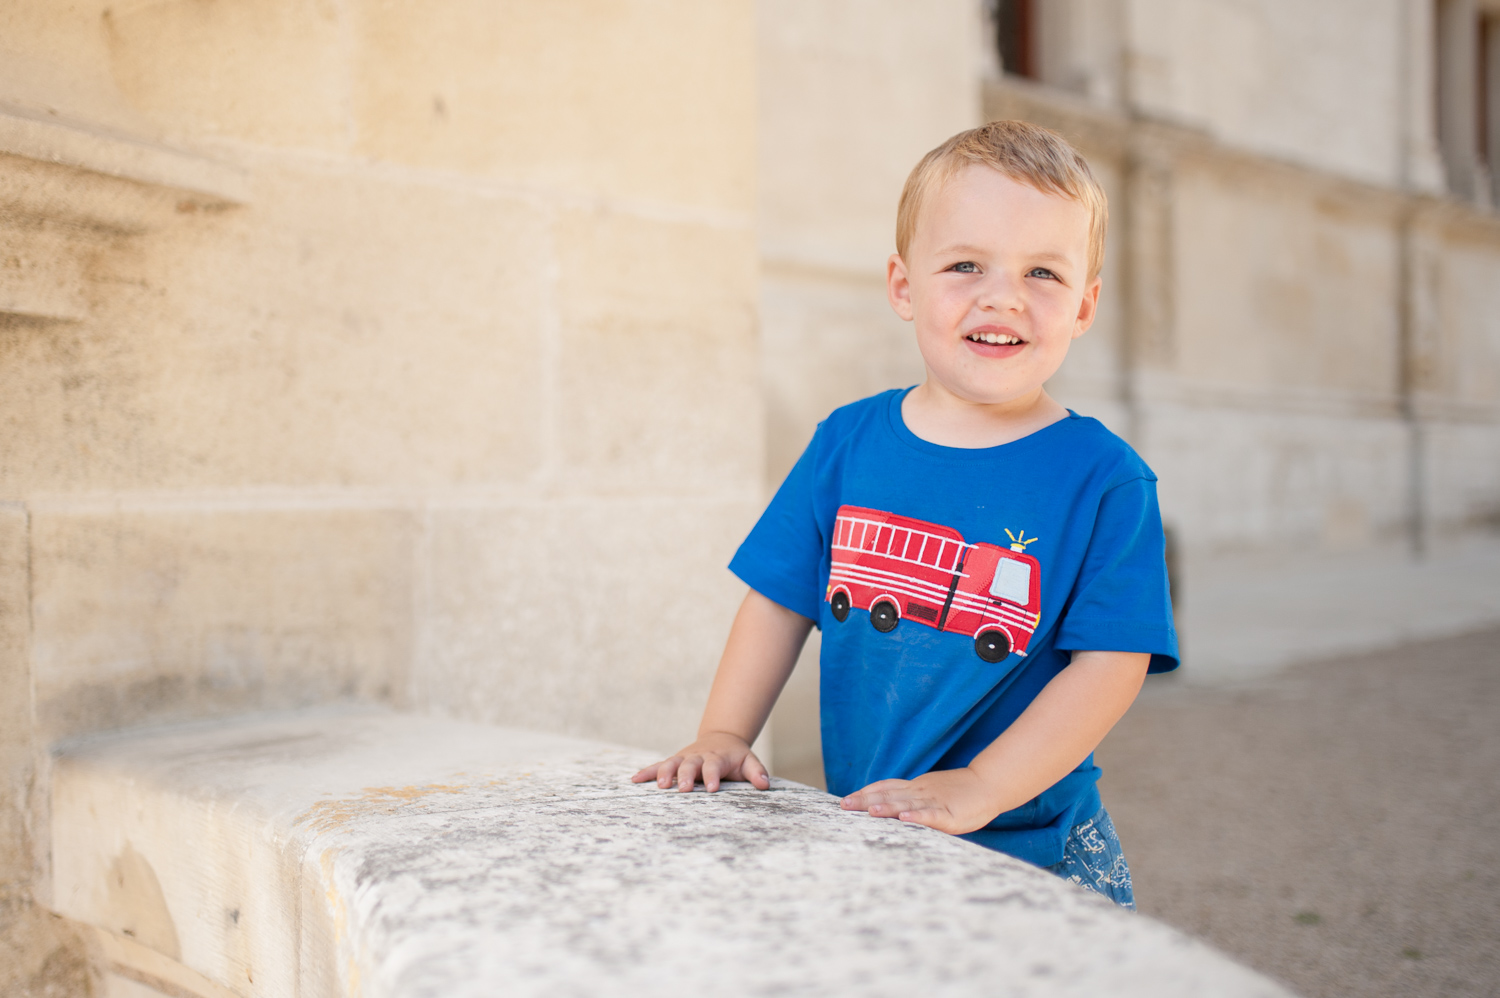 On a super-sunny day, I took my son to the shady side of the castle for a better photo